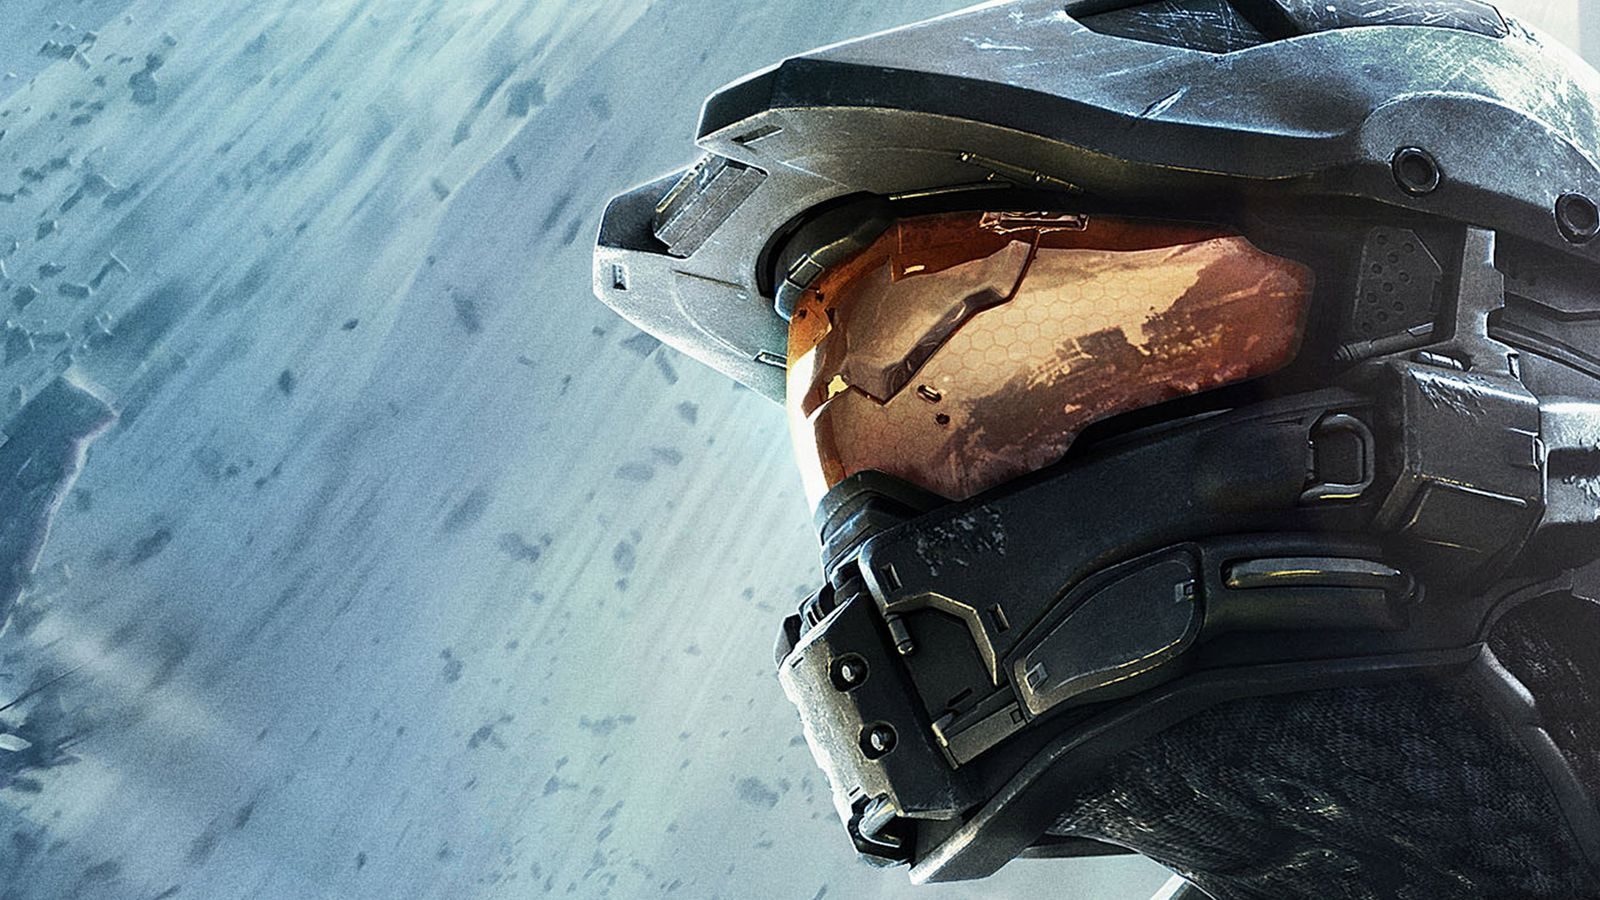 halo wallpaper hd